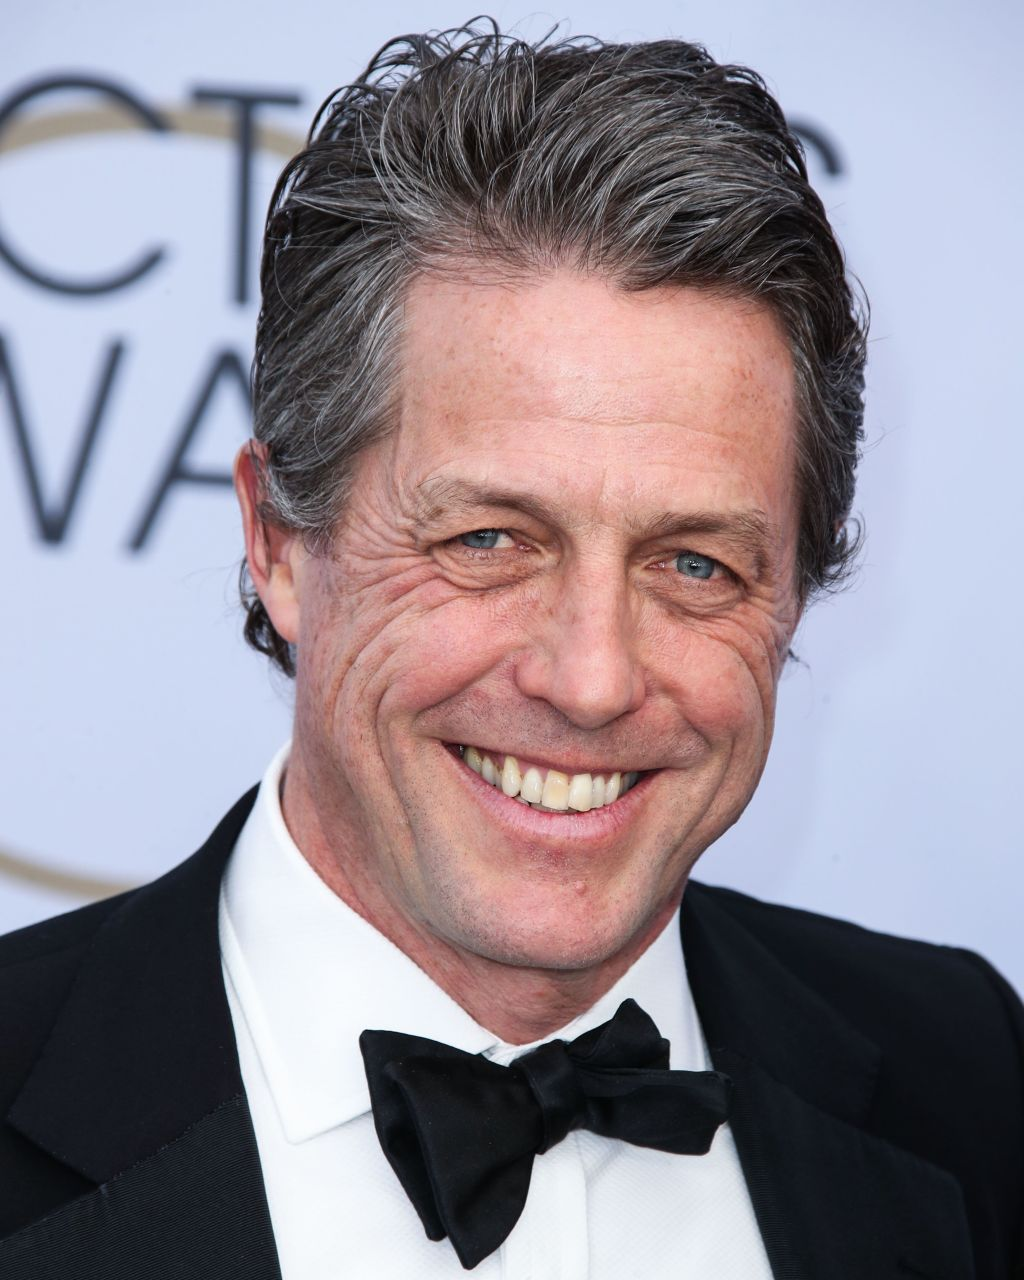 Hugh Grant Has 5 Good Reasons Why He's Become A Better Actor In The Last Ten Years